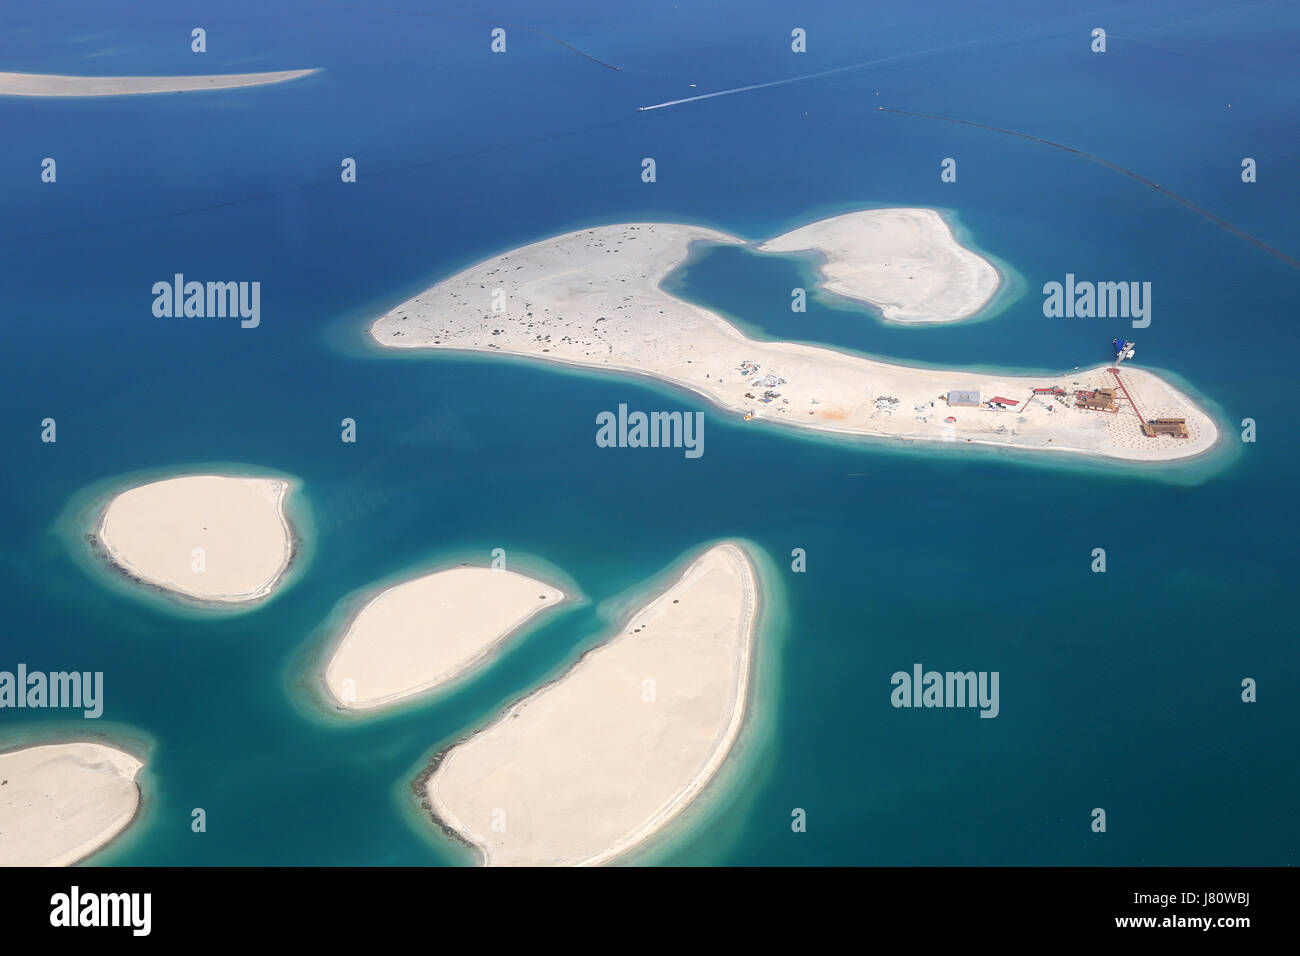 Dubai The World Clarence Island Islands aerial view photography UAE - Stock Image